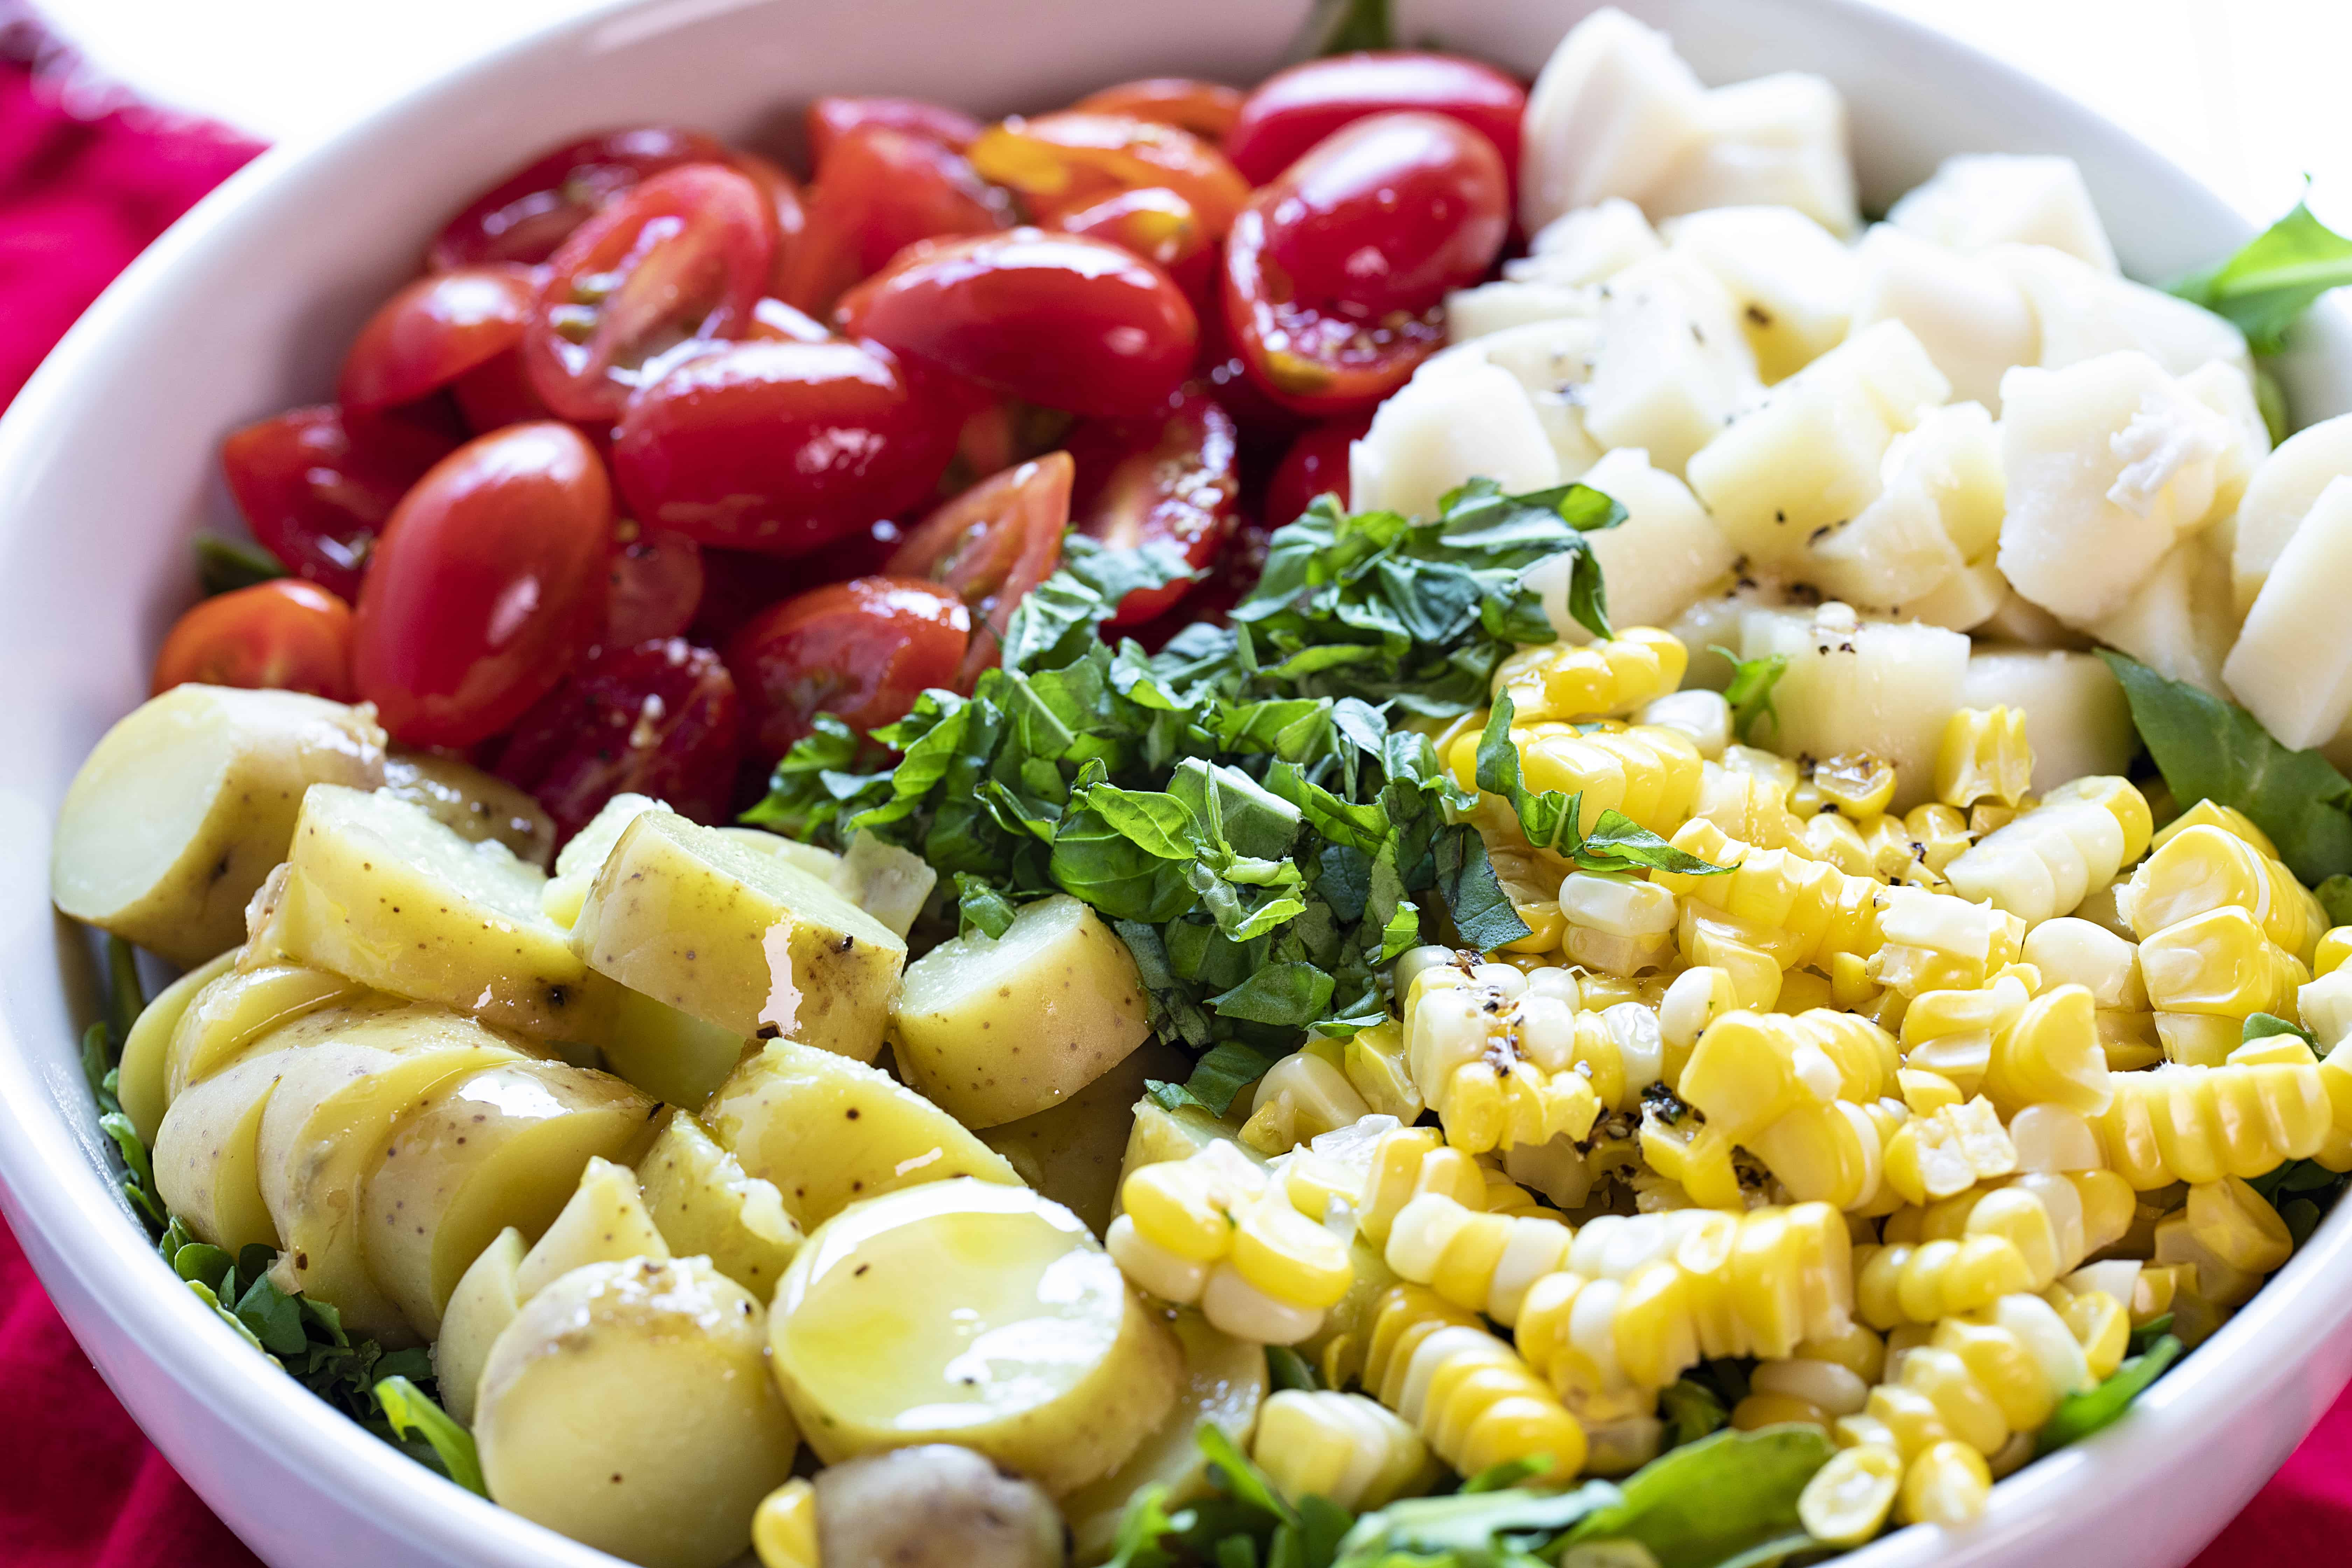 Beautiful Ingredients for the Perfect Summer Salad! Tomatoes, Corn, Potatoes all on Lettuce.